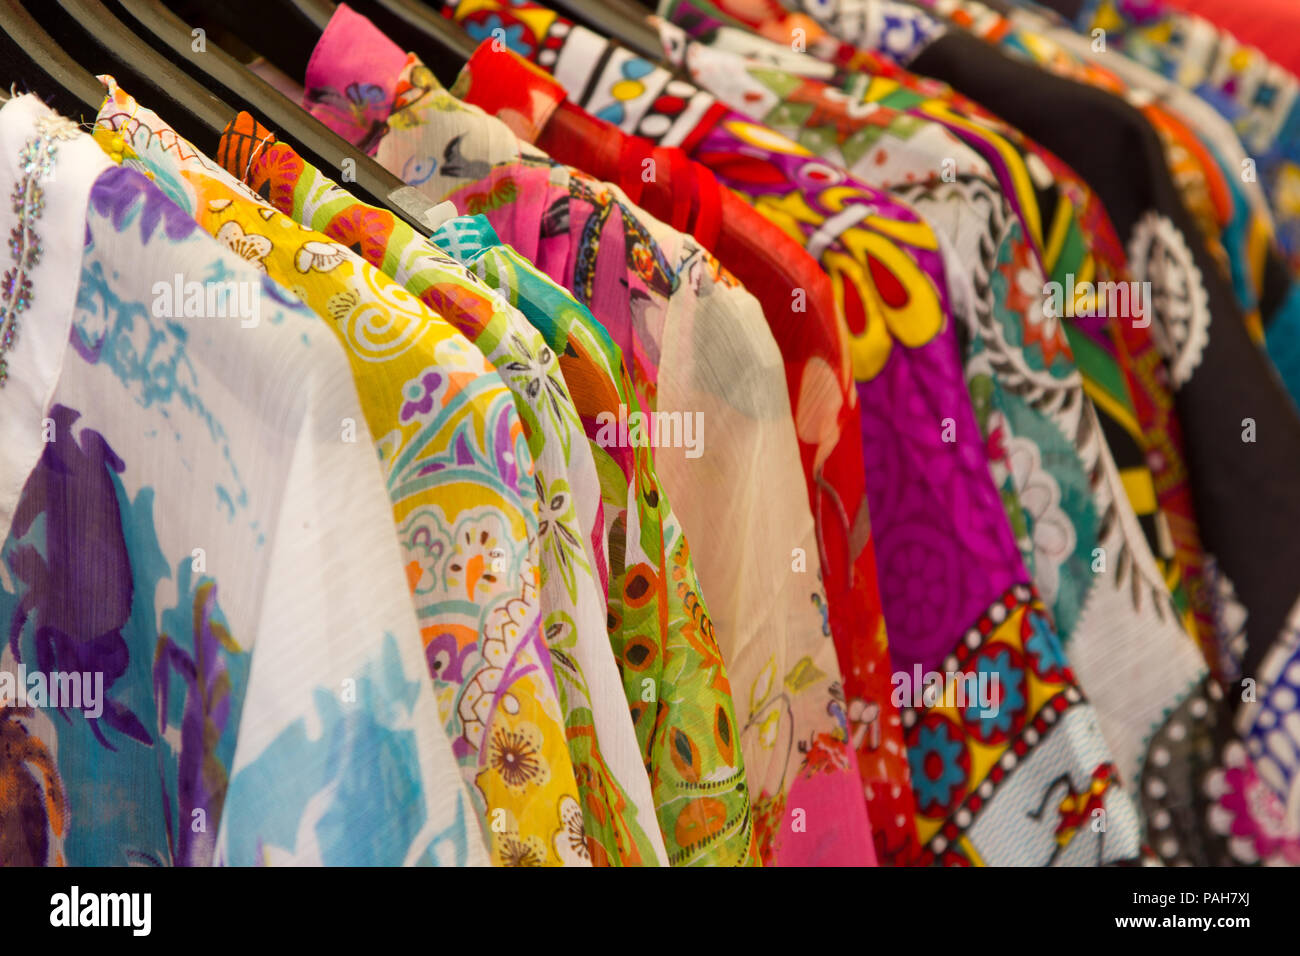 68a4e37918 Brightly coloured clothes in a Greek clothes shop - Stock Image